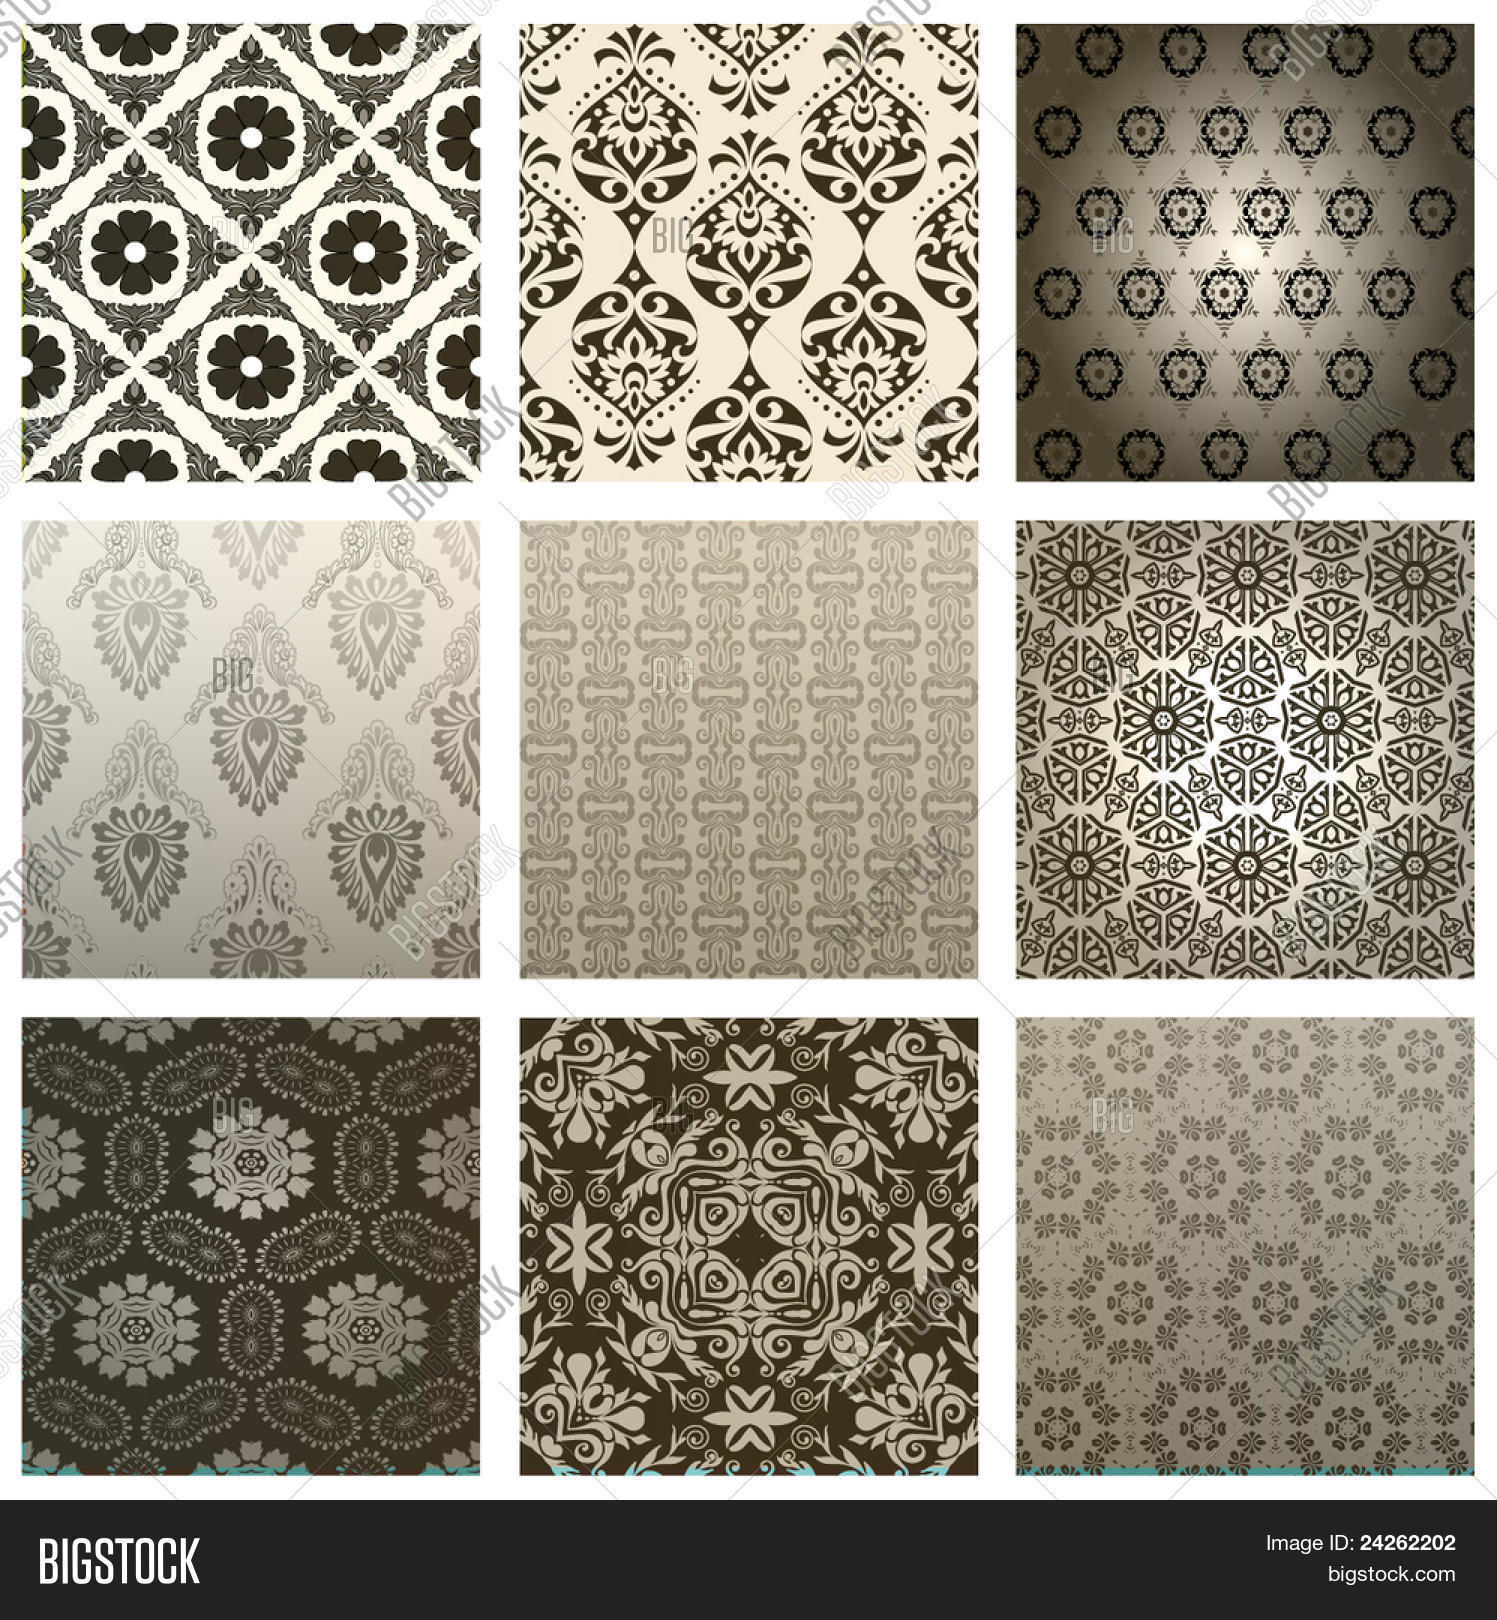 Retro Wallpaper Vector Photo Free Trial Bigstock